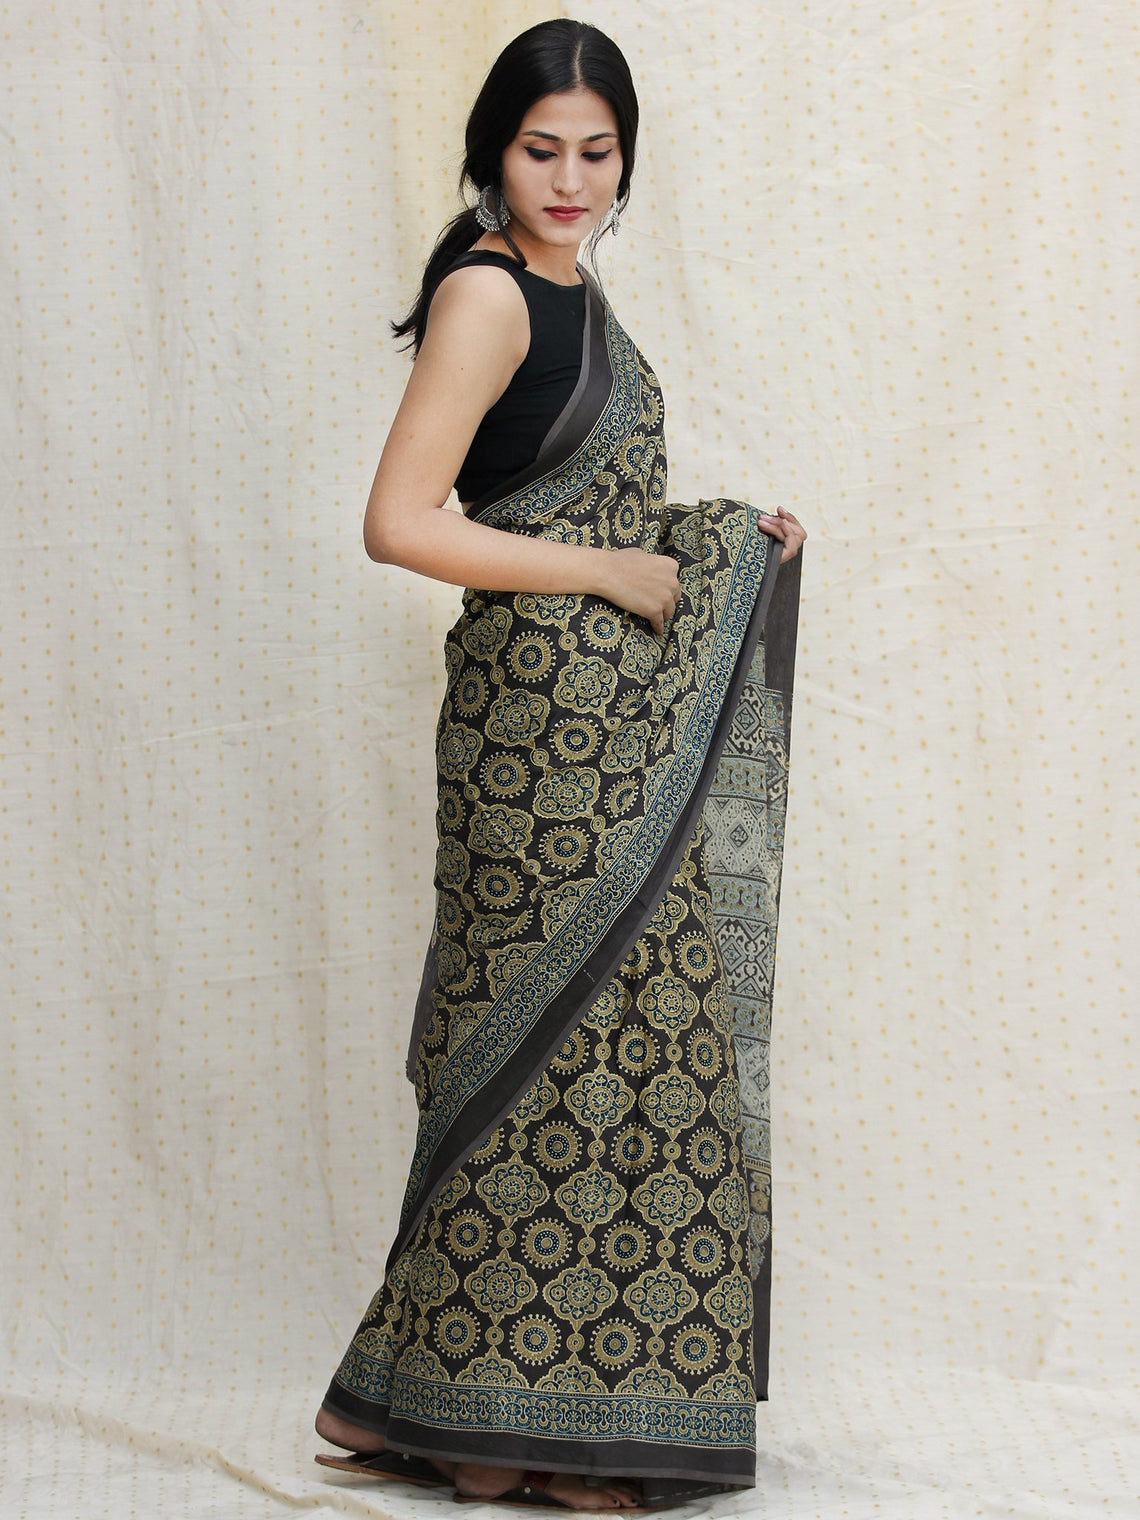 Charcoal Black Olive Green Ivory Ajrakh Hand Block Printed Modal Silk Saree - S031704115